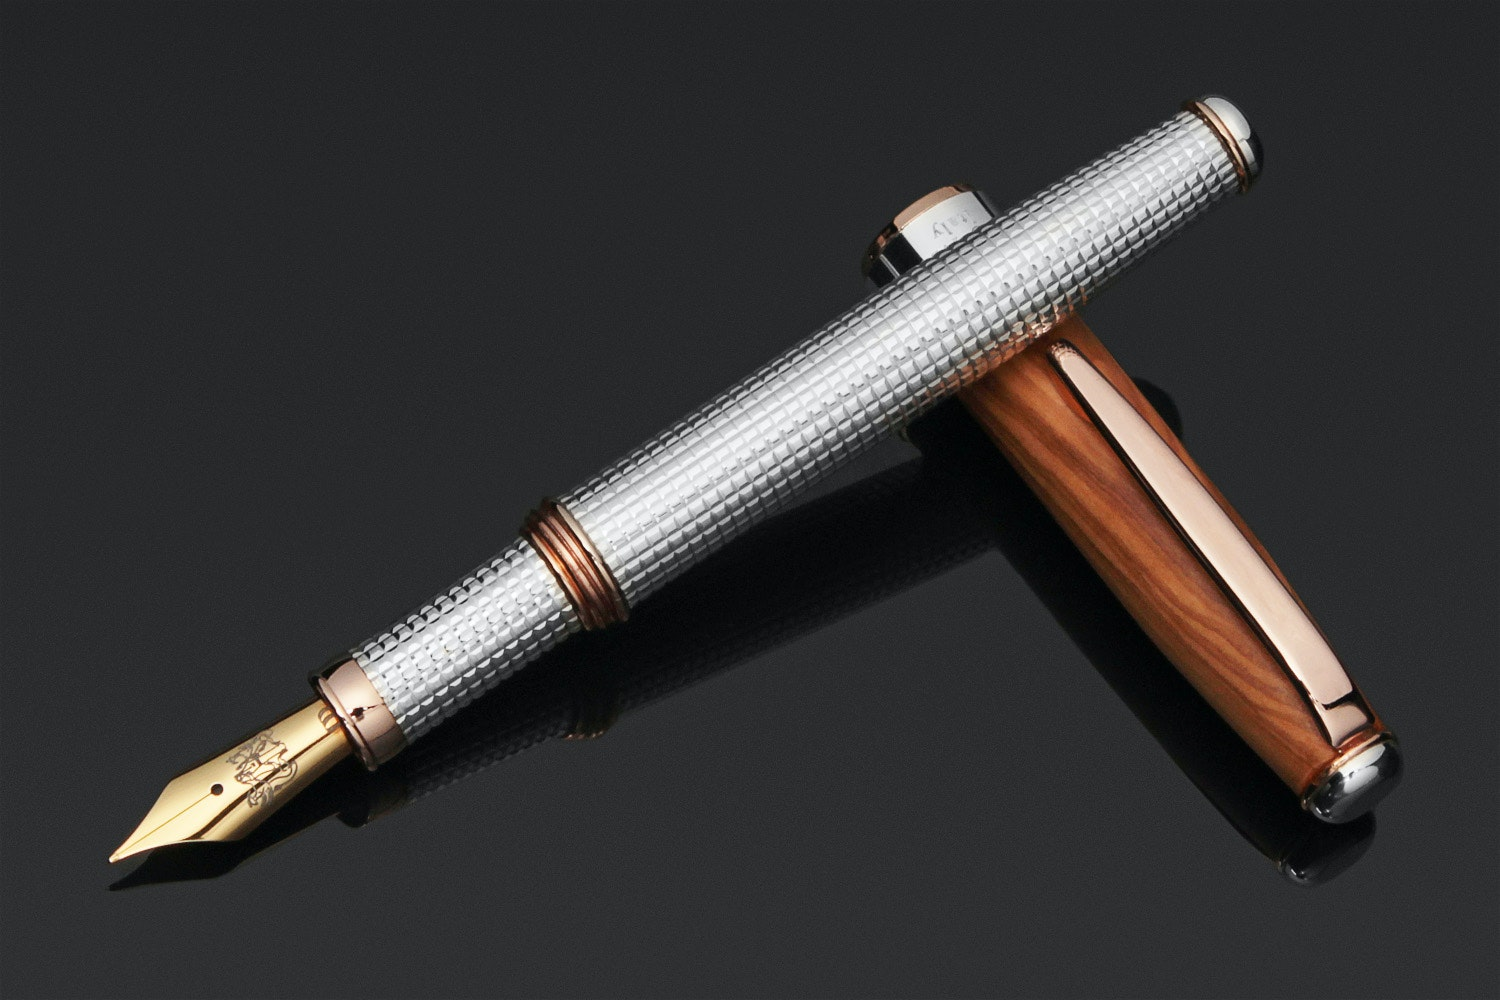 Grifos Mandragola Silver & Wood Fountain Pen